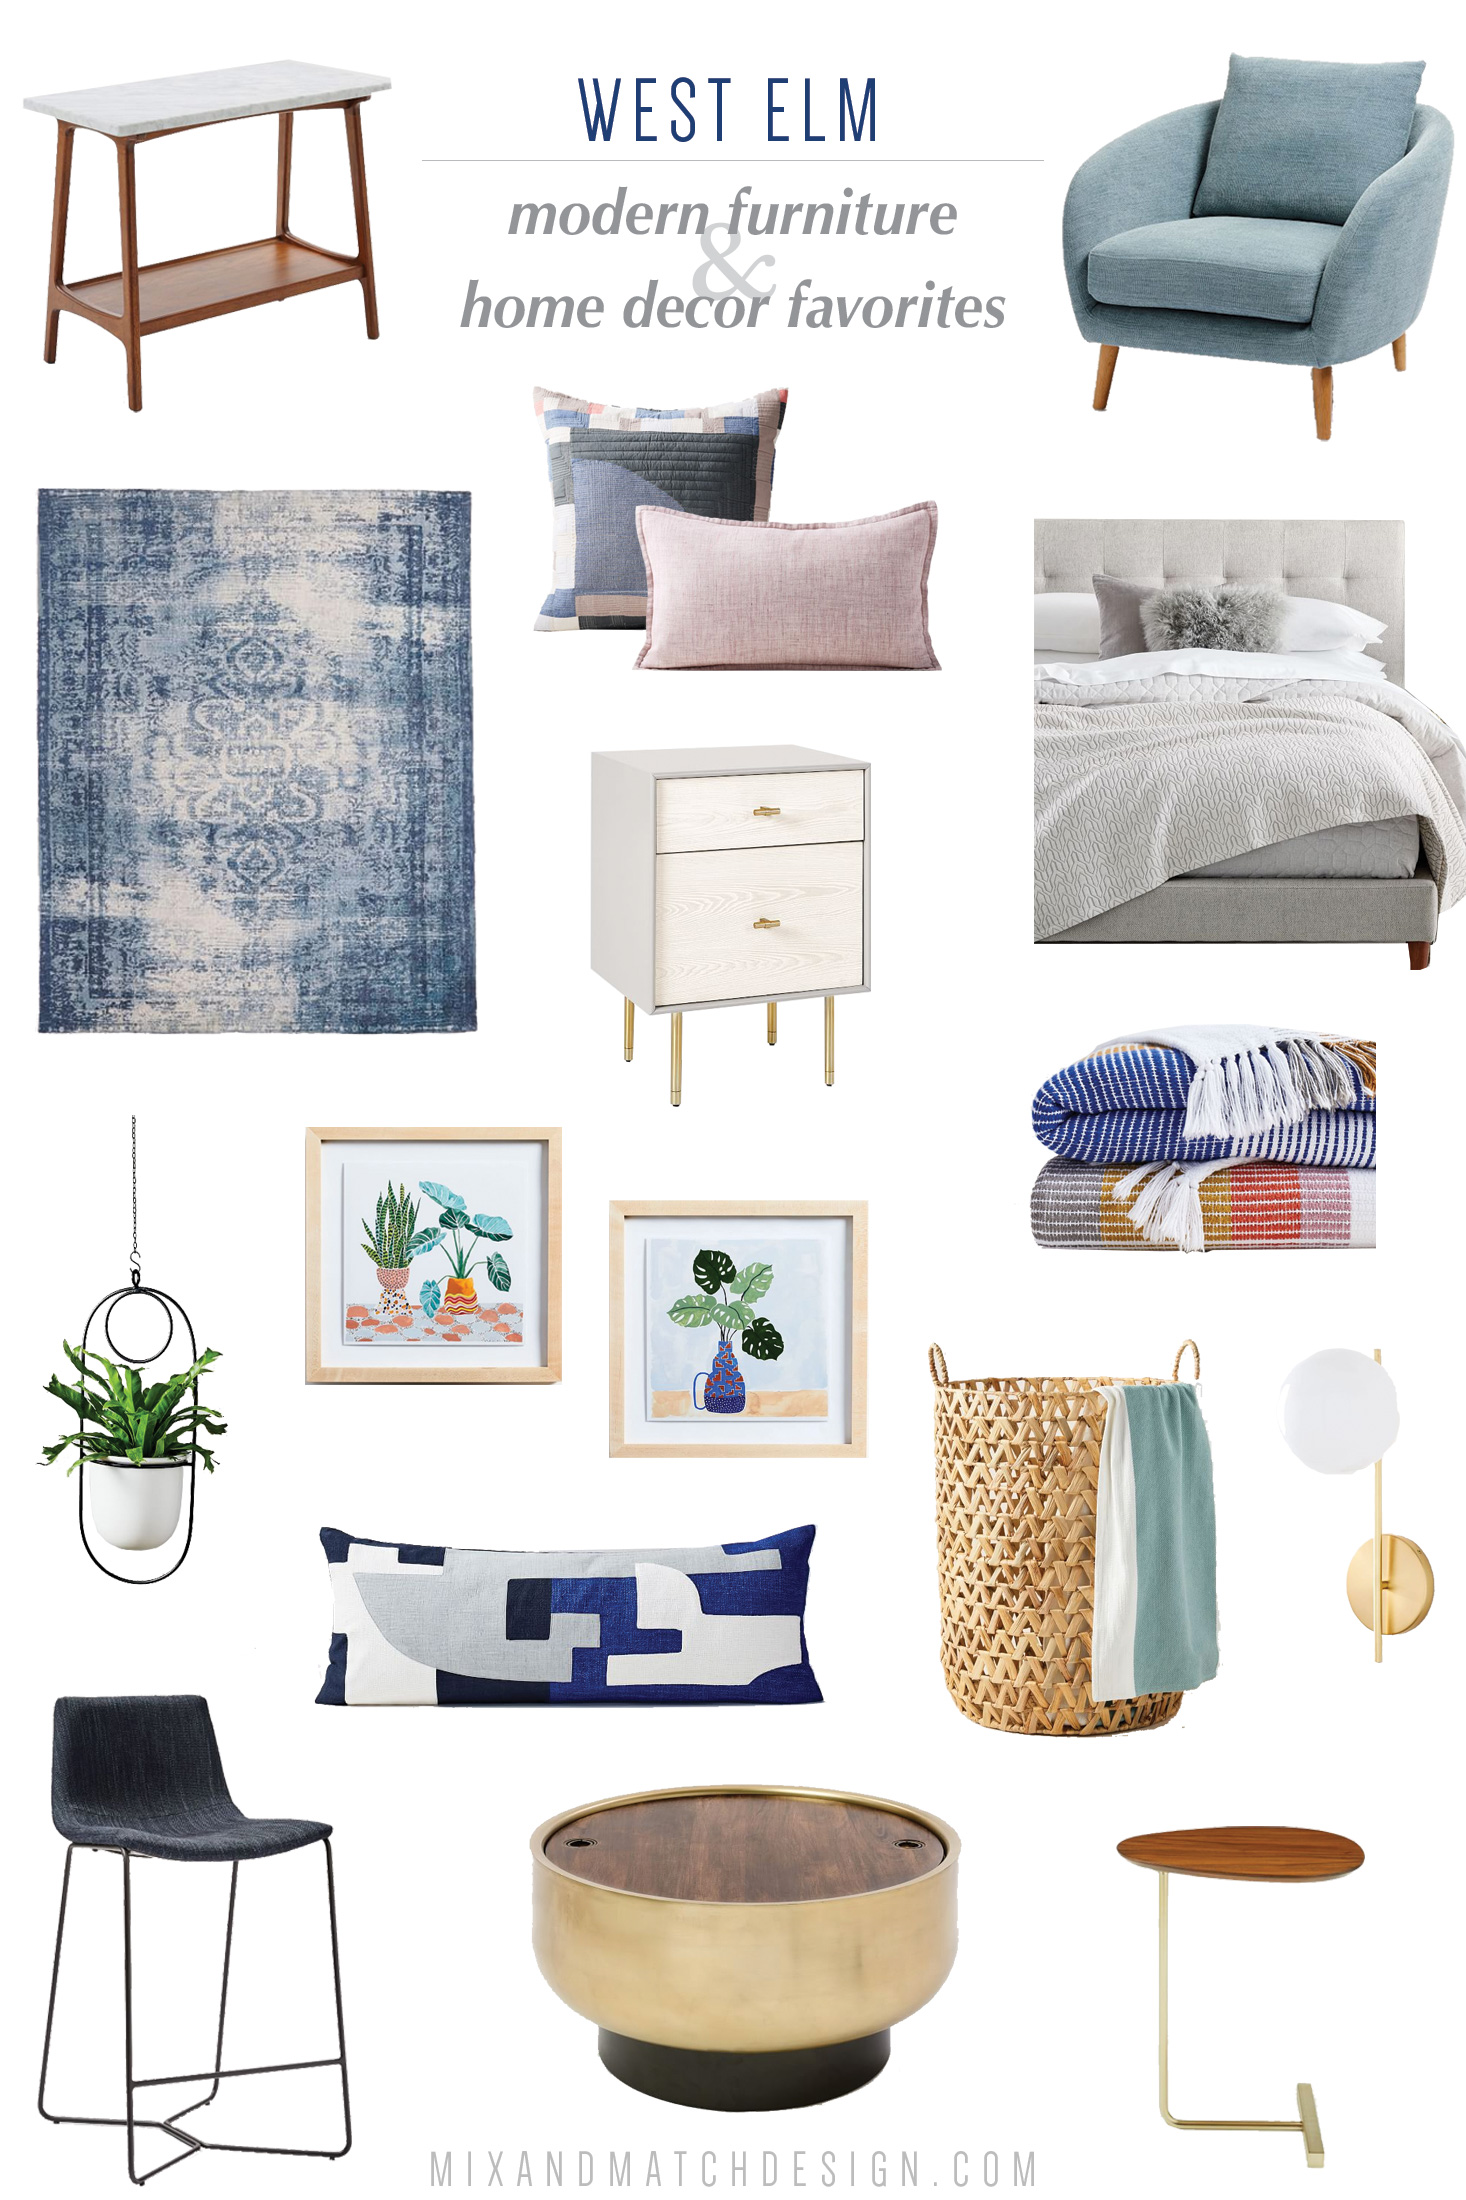 A roundup of the furniture and decor that caught my eye recently at West Elm. If you're looking for recommendations for mid-century modern, industrial, and steamlined items for your home, be sure to check out this blog post for the sources and tips for using these pieces when you're decorating your home.